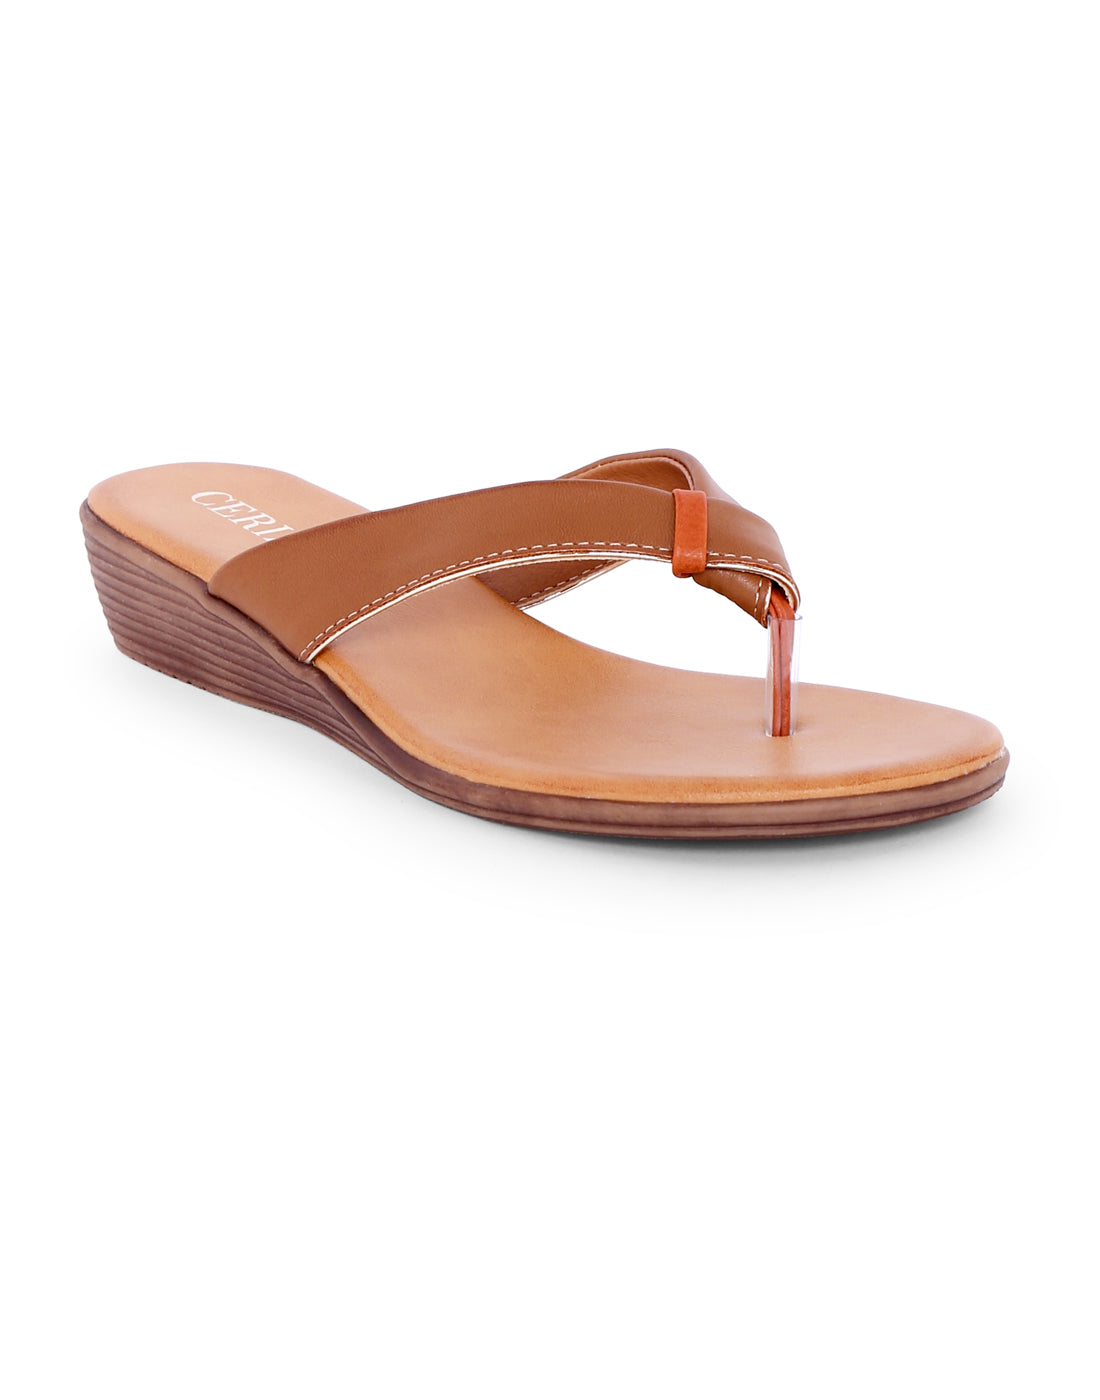 Dakinia Tan Knotted Sandals